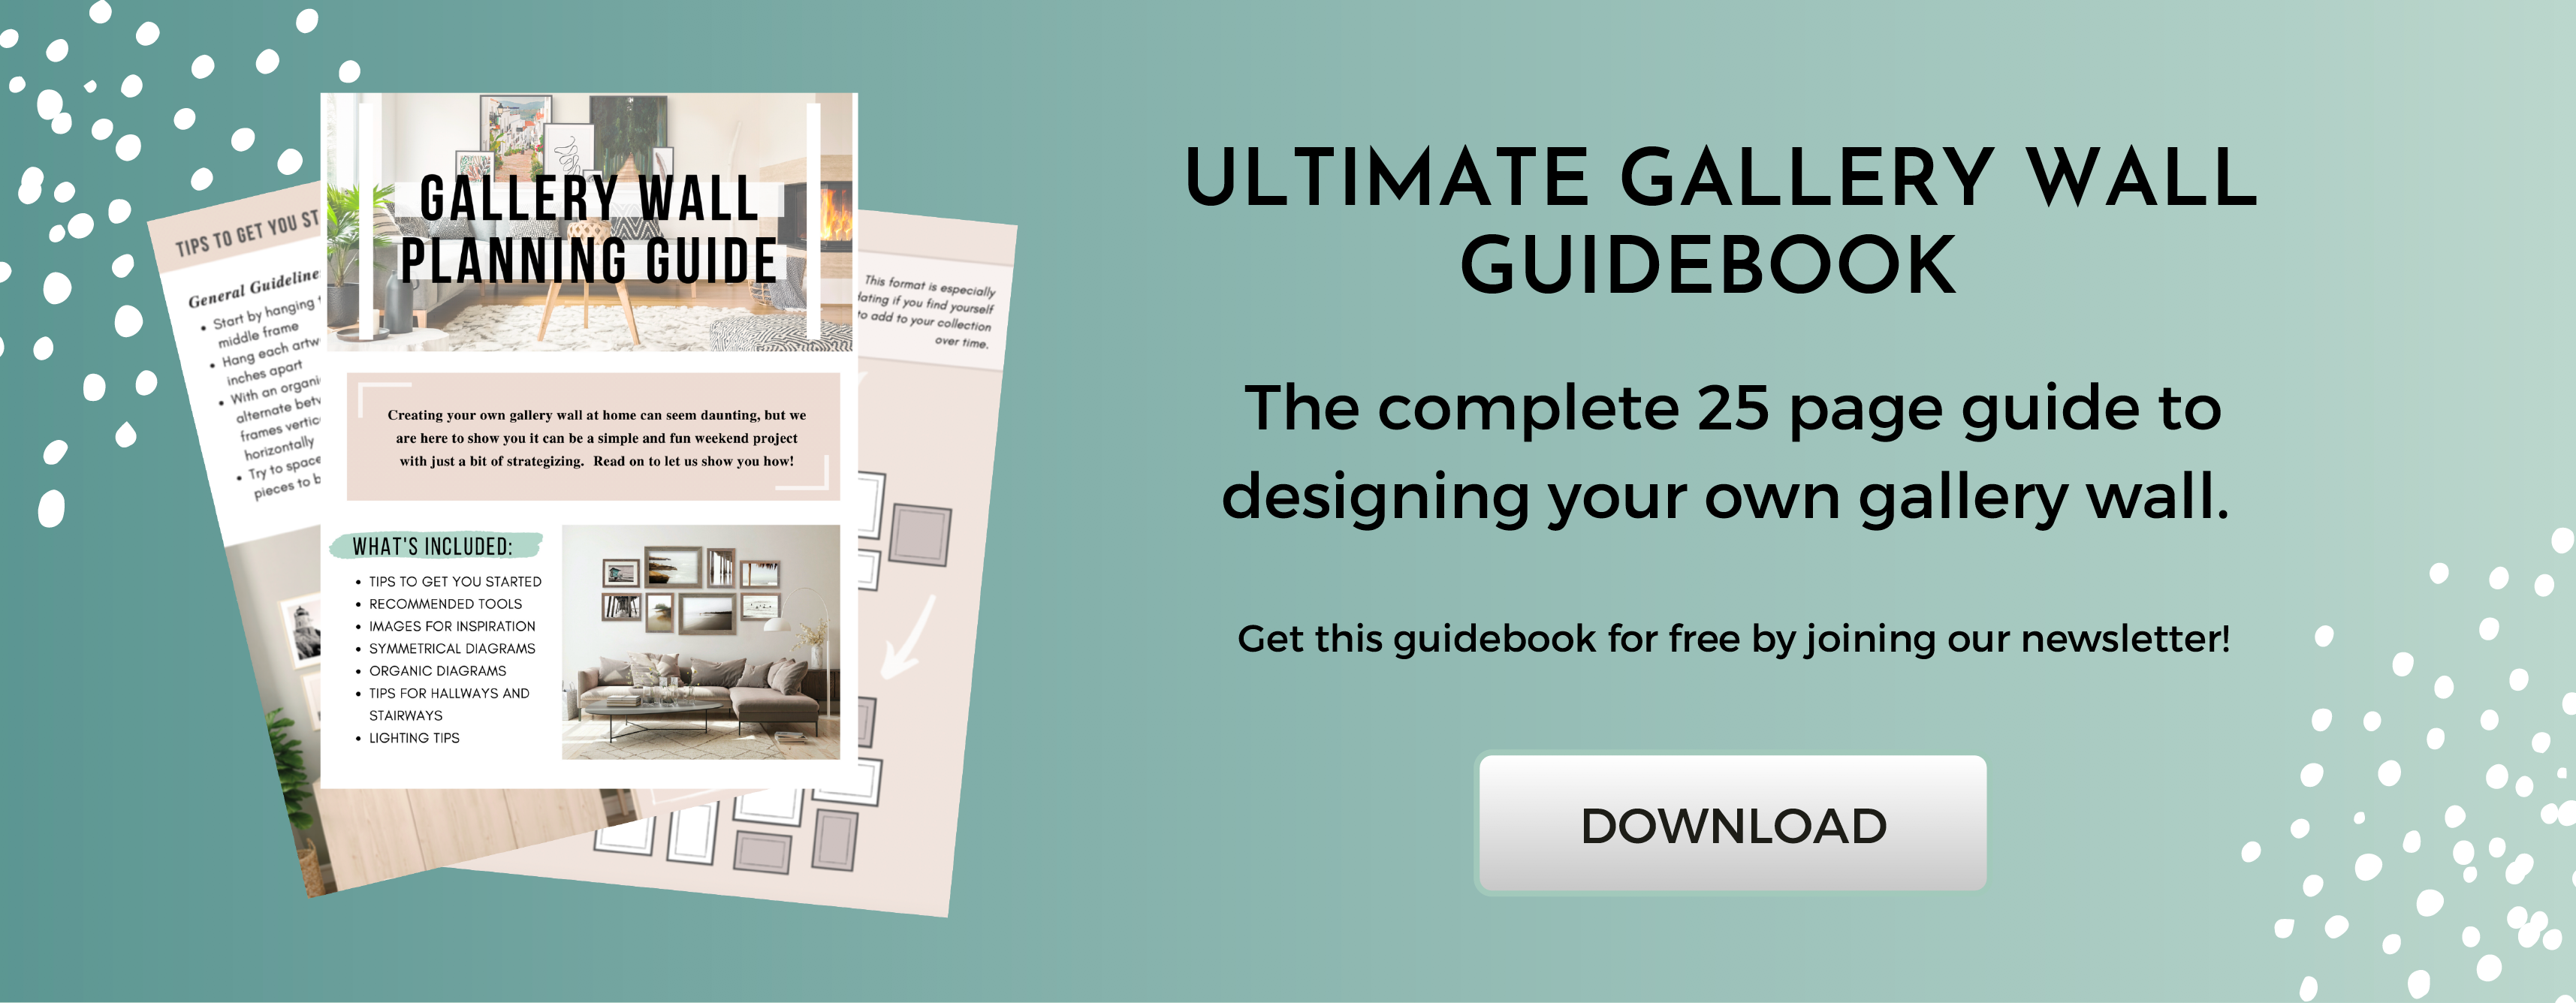 Download Gallery Wall Guidebook